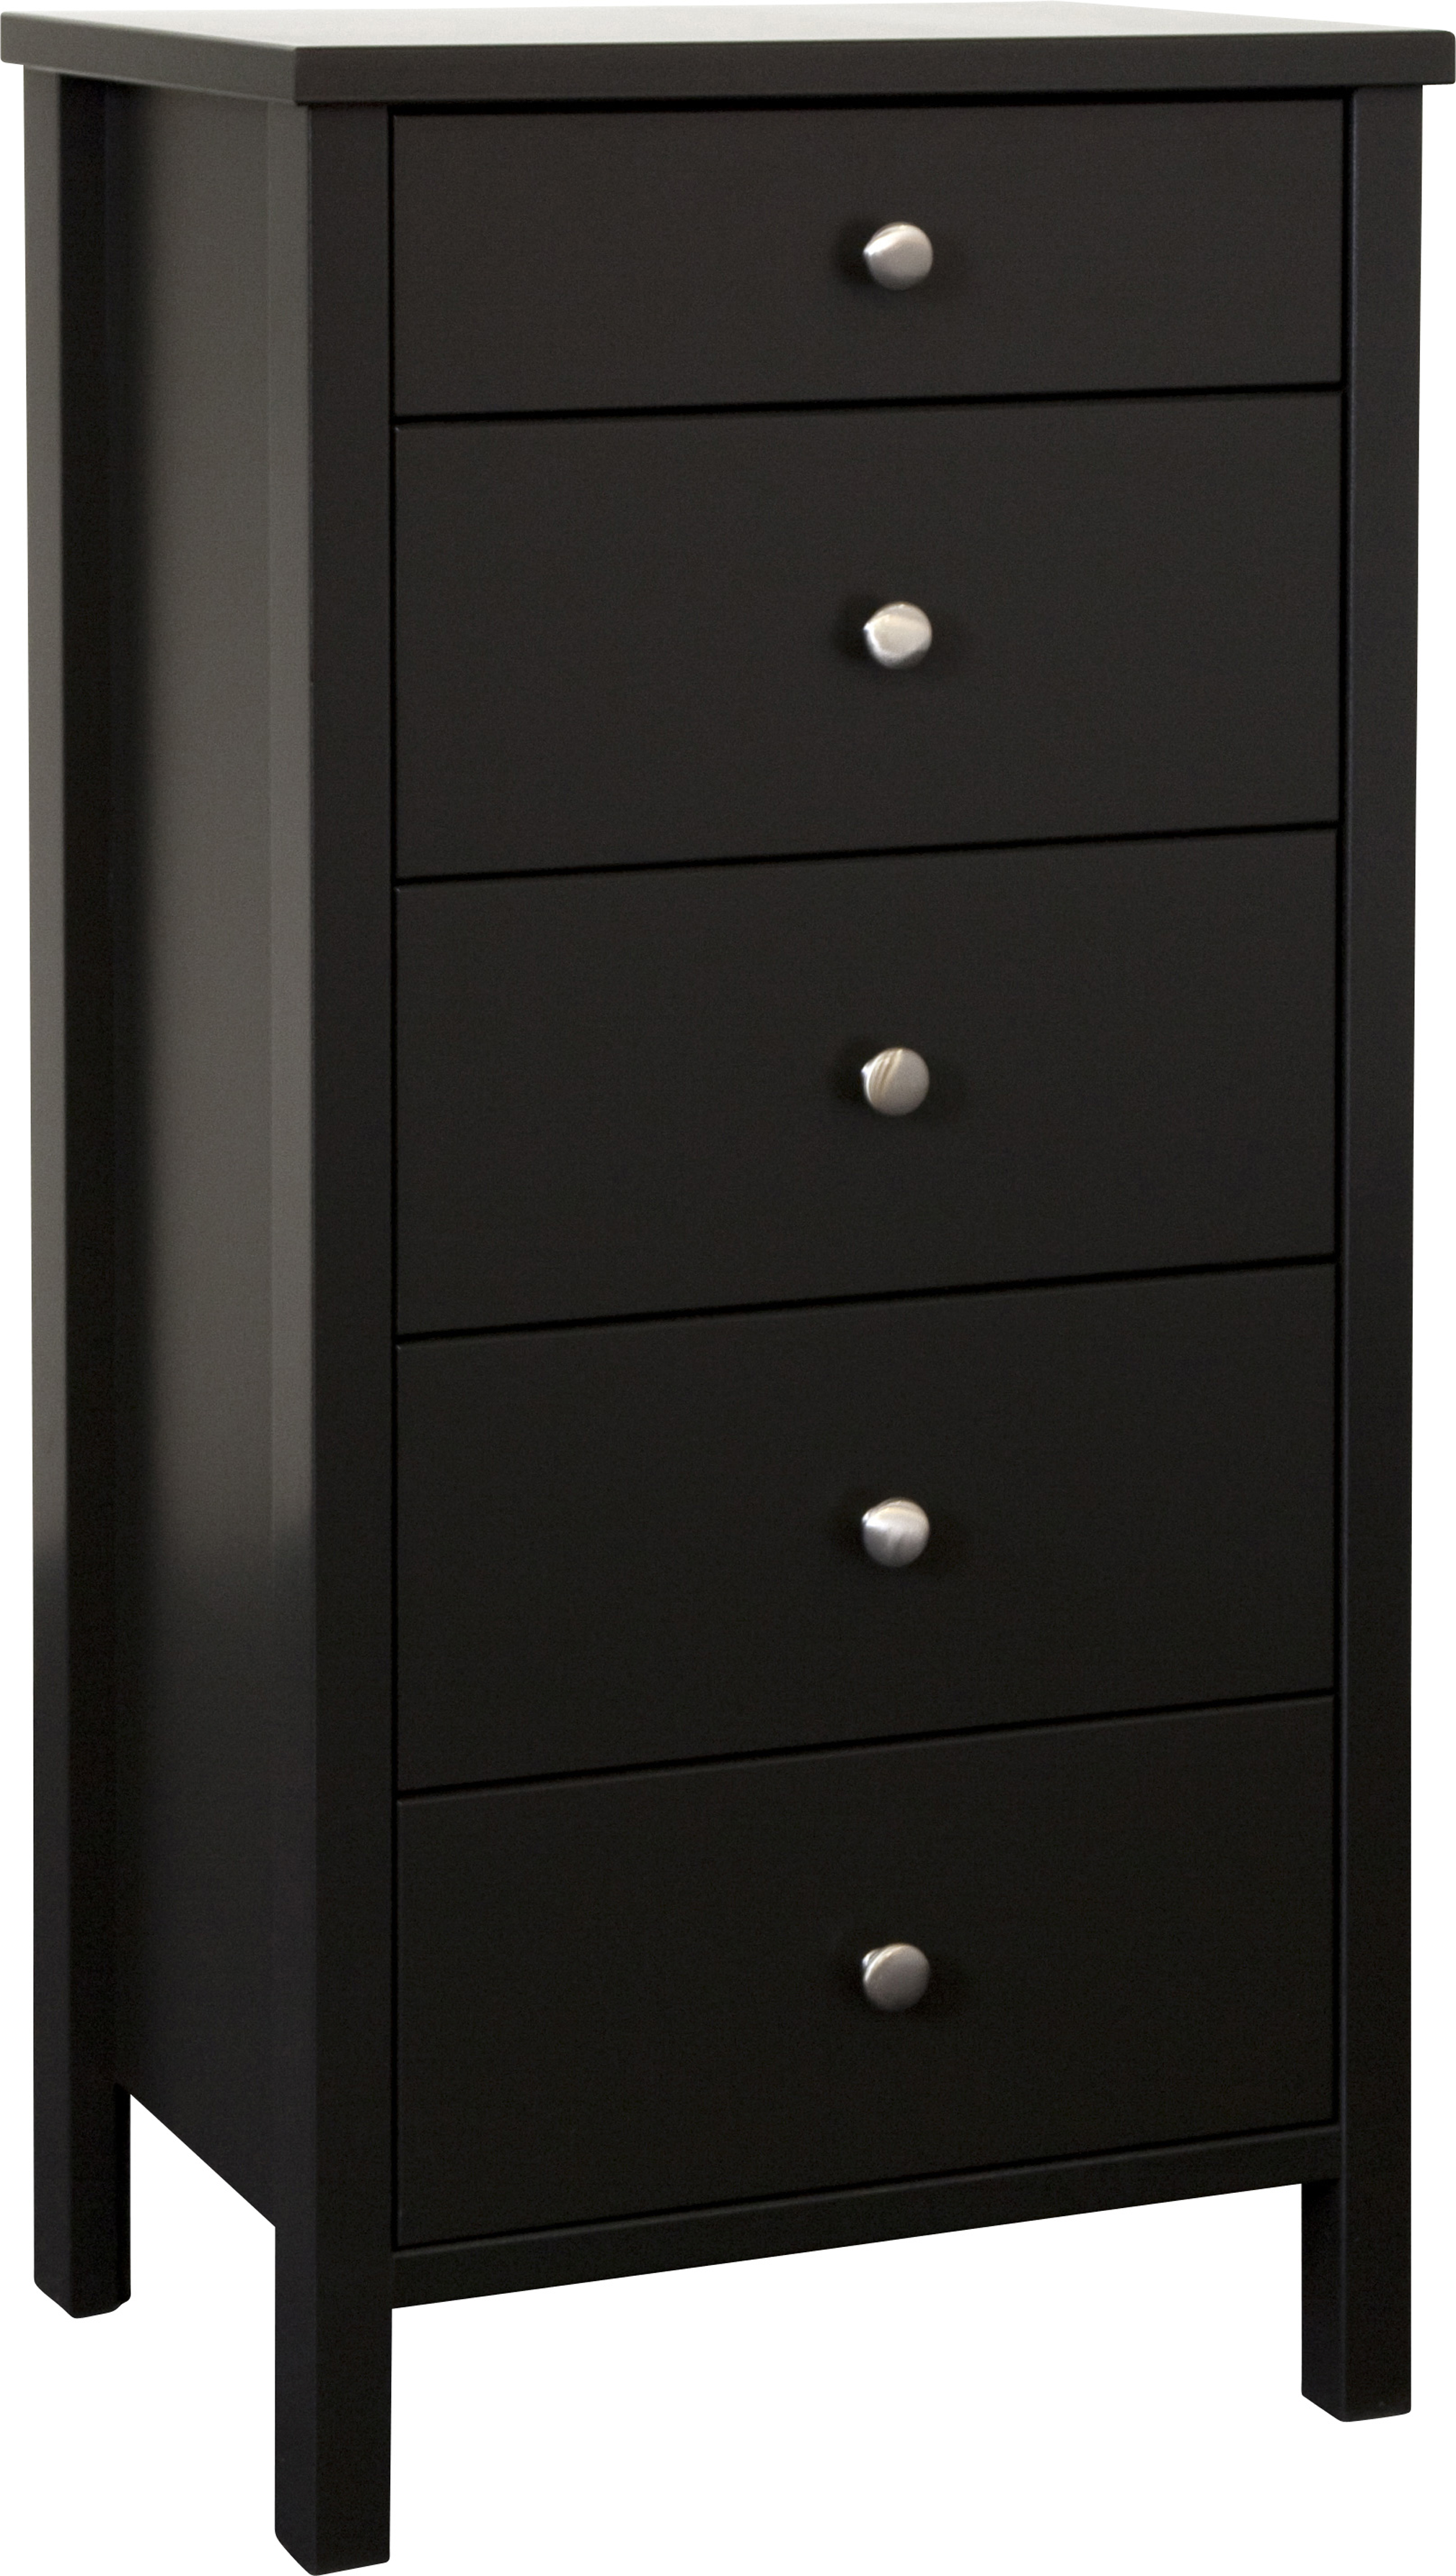 Shaker Style 5 Drawer Tall Narrow Chest